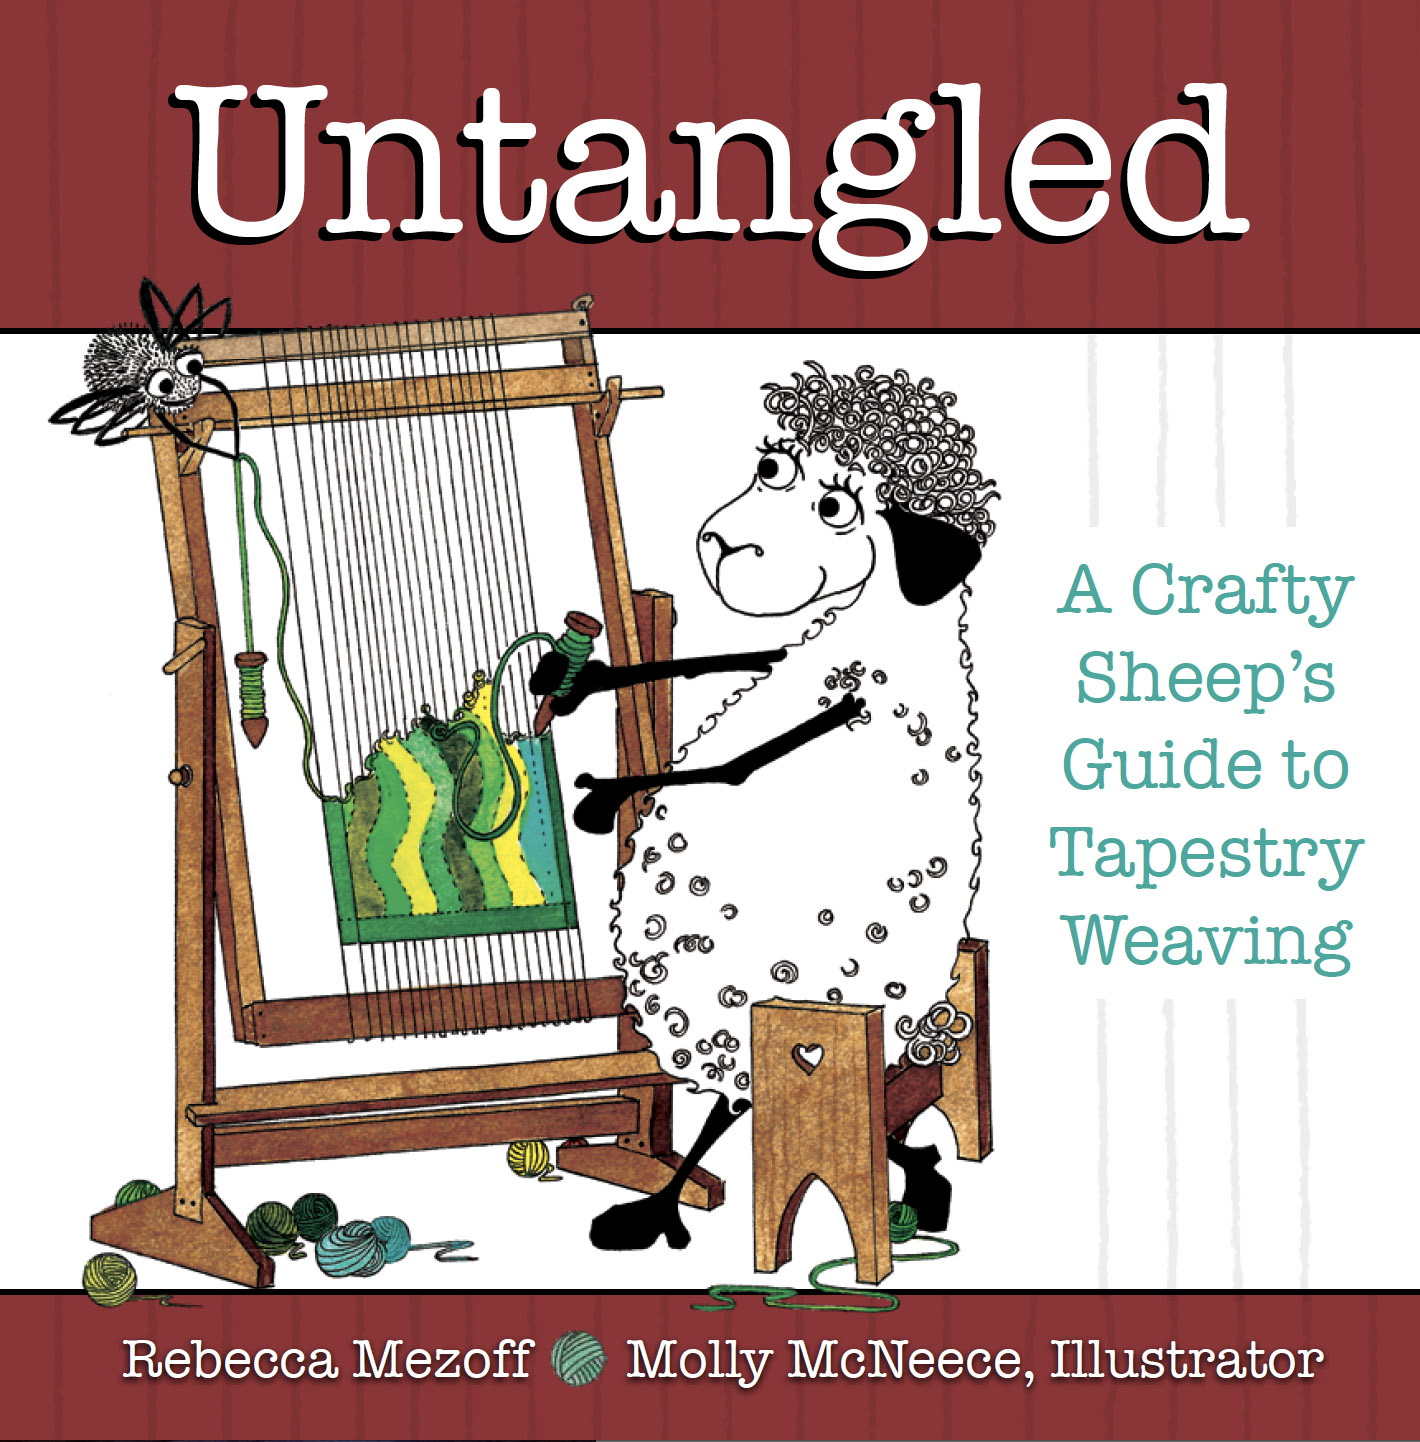 Untangled: A Crafty Sheep's Guide to Tapestry Weaving by Rebecca Mezoff